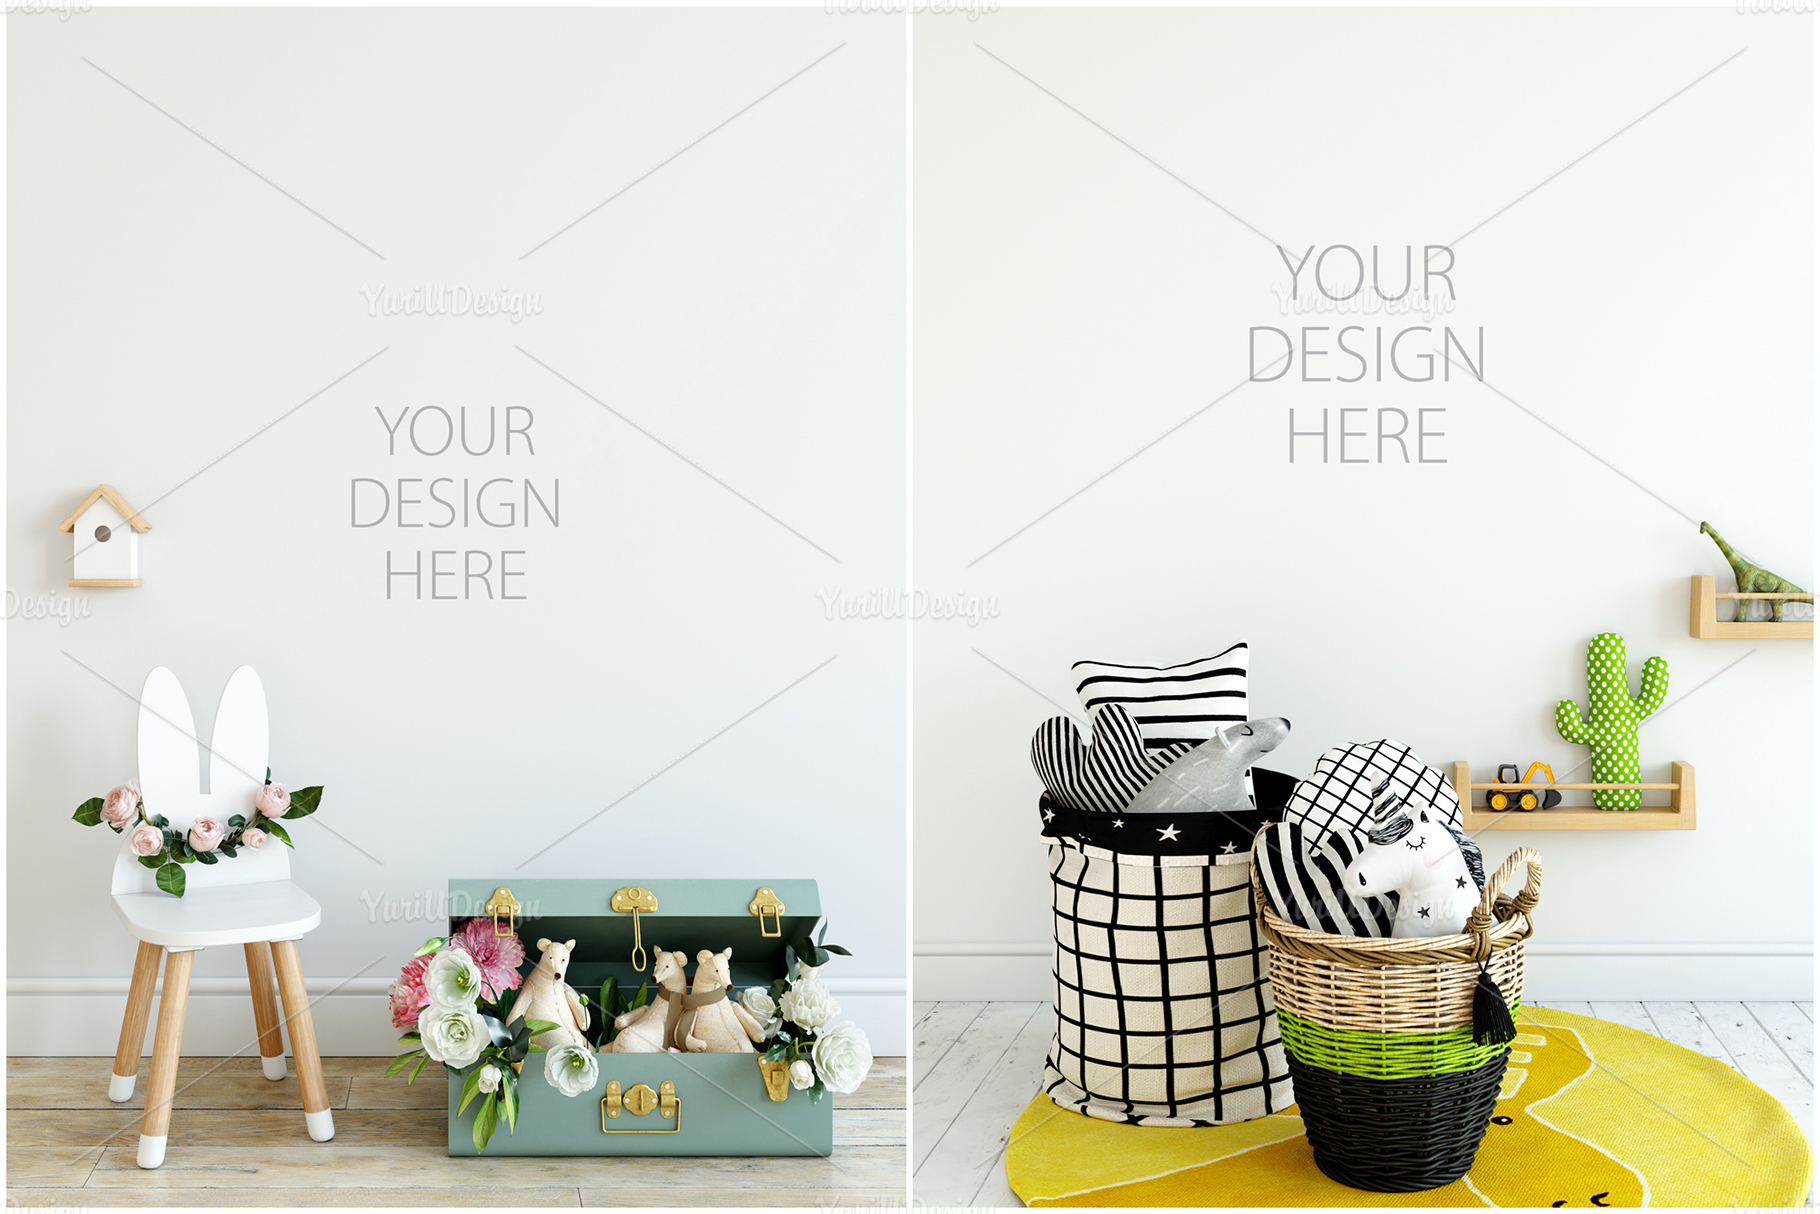 Kids Frames & Wall Mockup Bundle - 5 example image 20